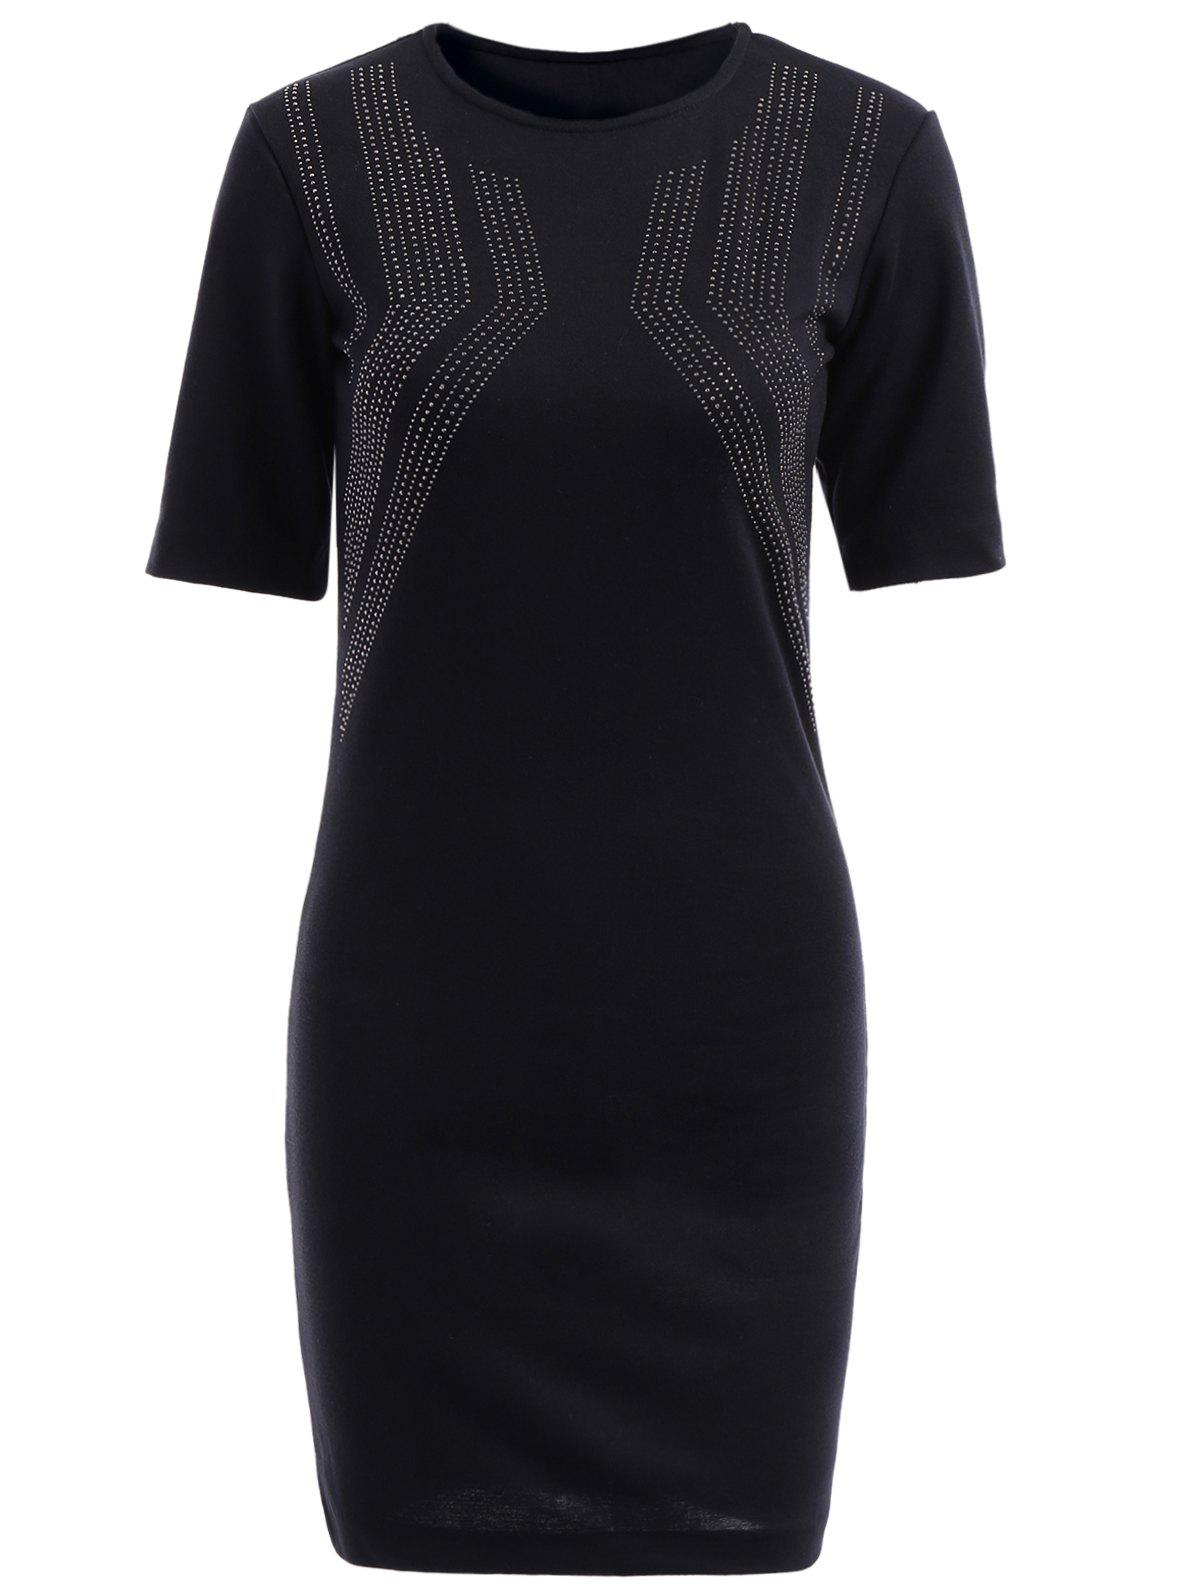 Elegant Black Round Collar Rhinestone Embellished Short Sleeve Dress For Women - BLACK M